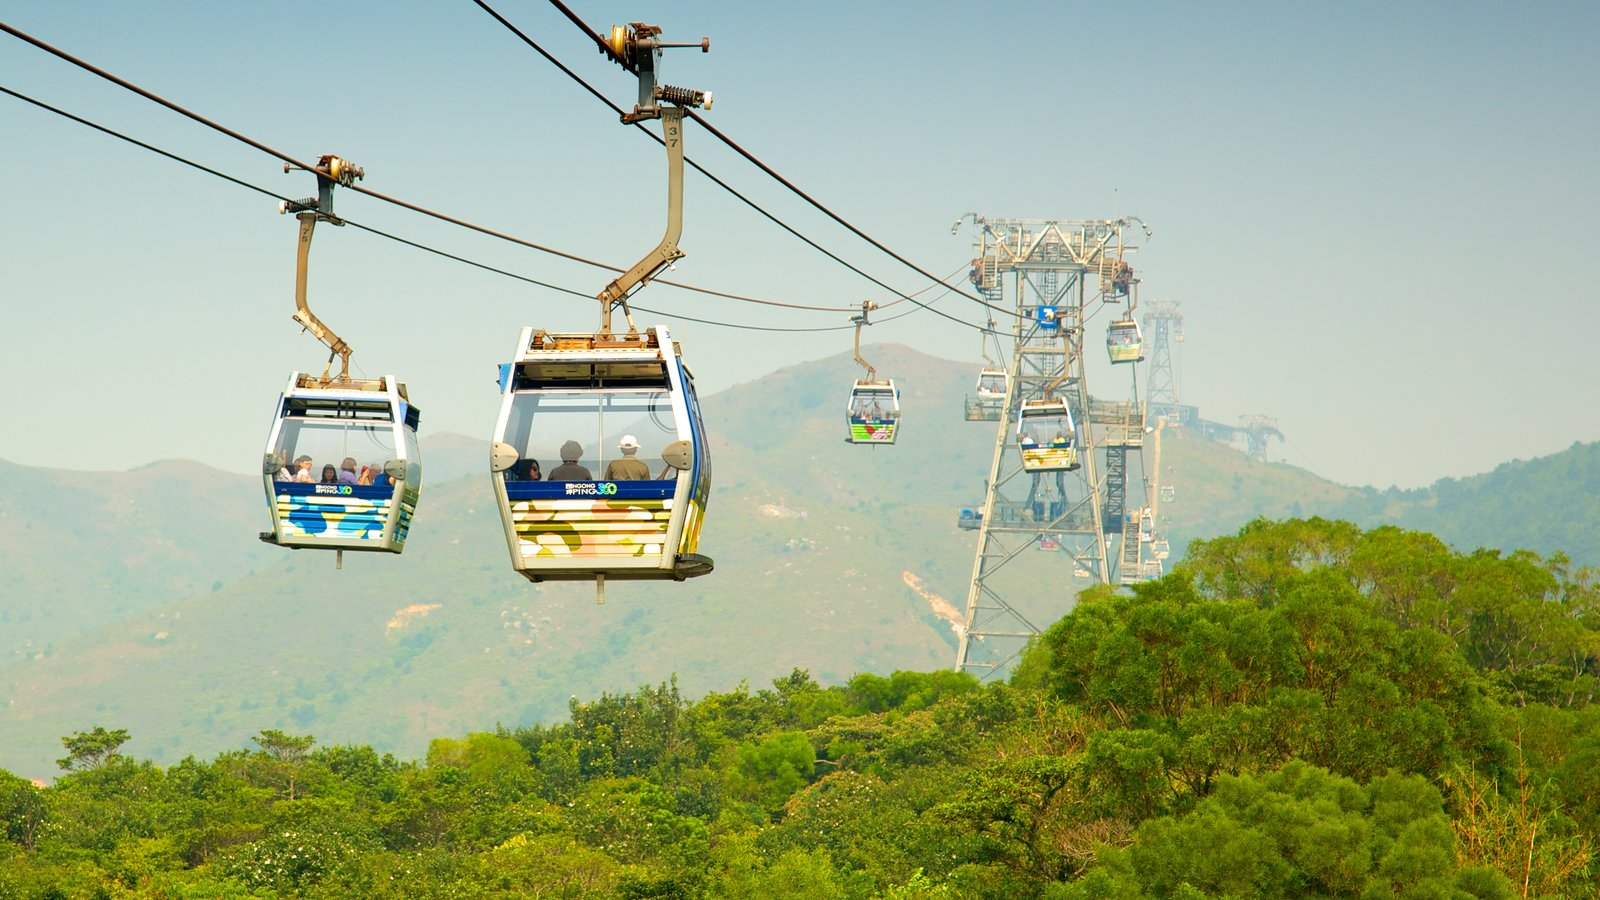 Ngong Ping 360 which includes a gondola and forests